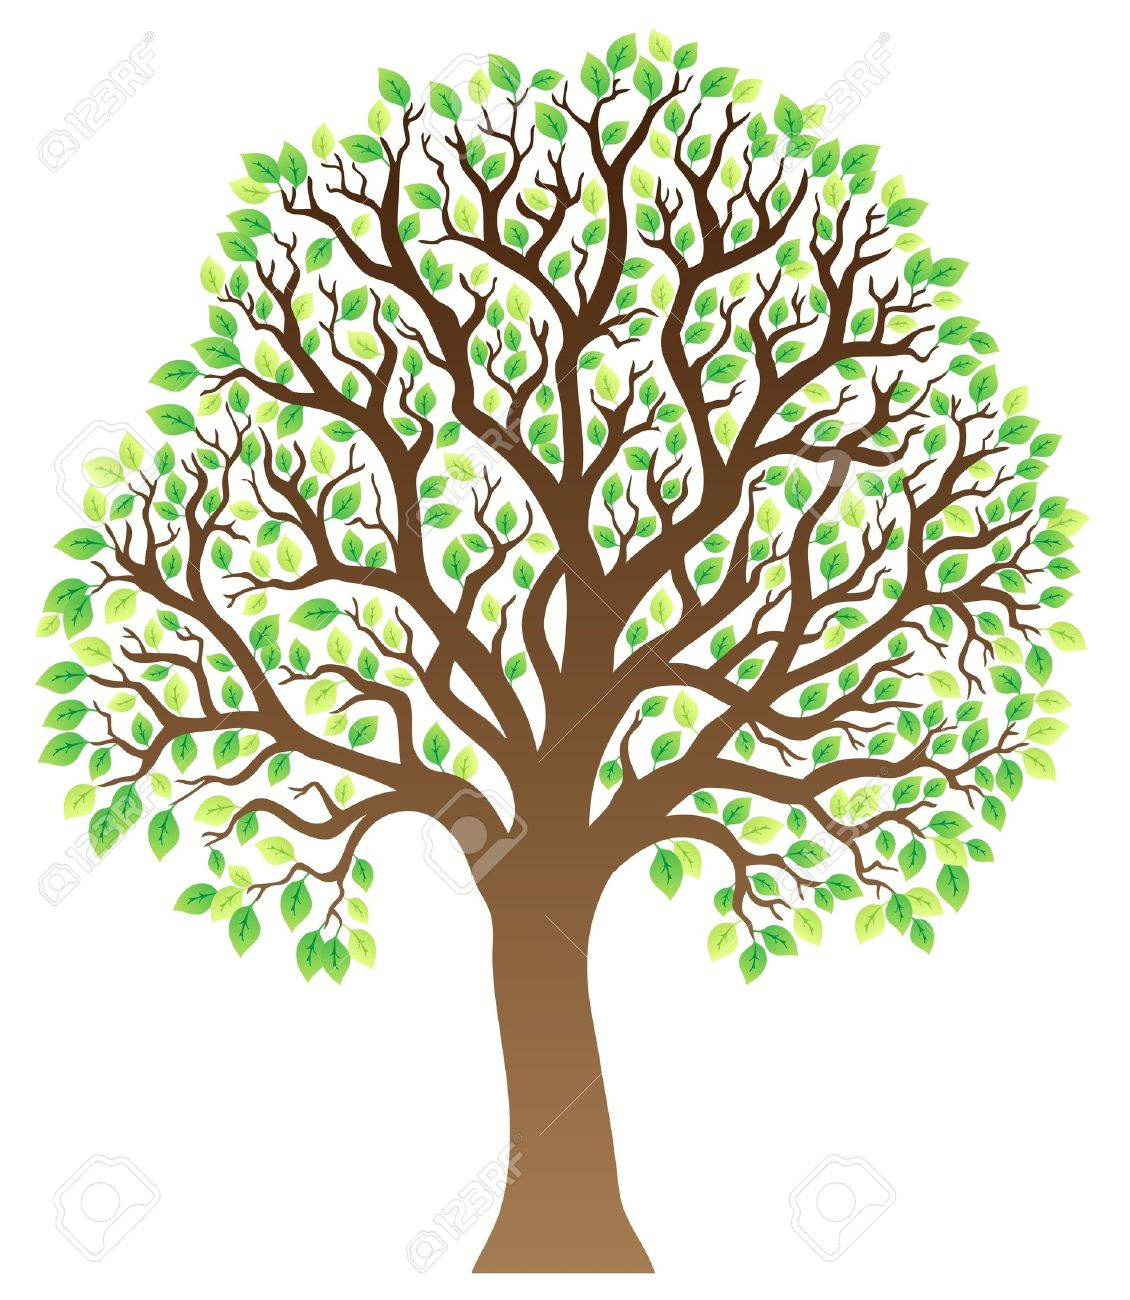 Tree with green leaves 1 How To Draw A Cartoon Tree Without Leaves